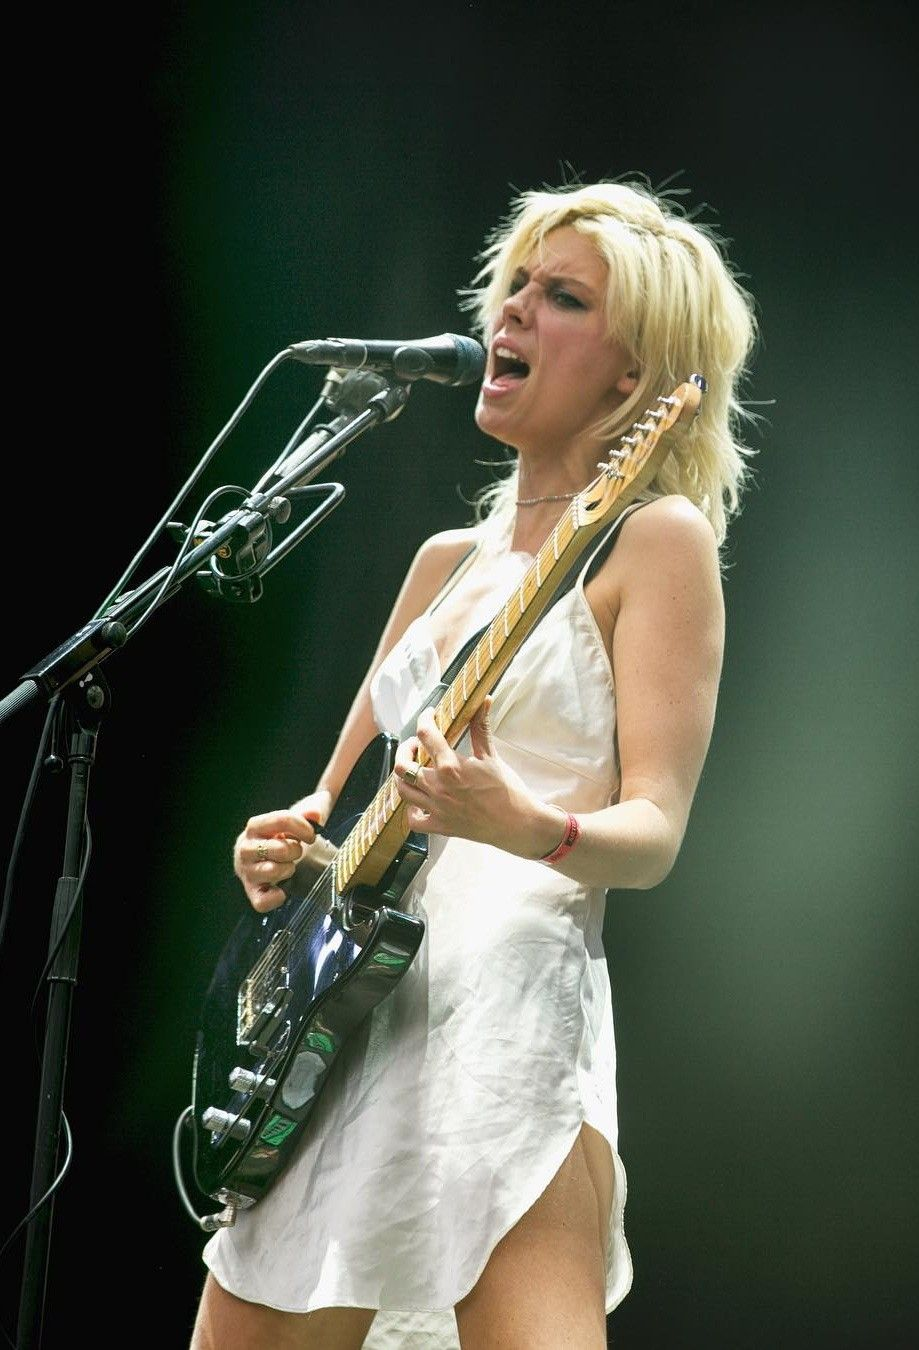 21 of the Best Female Guitarists & Bassists Under the